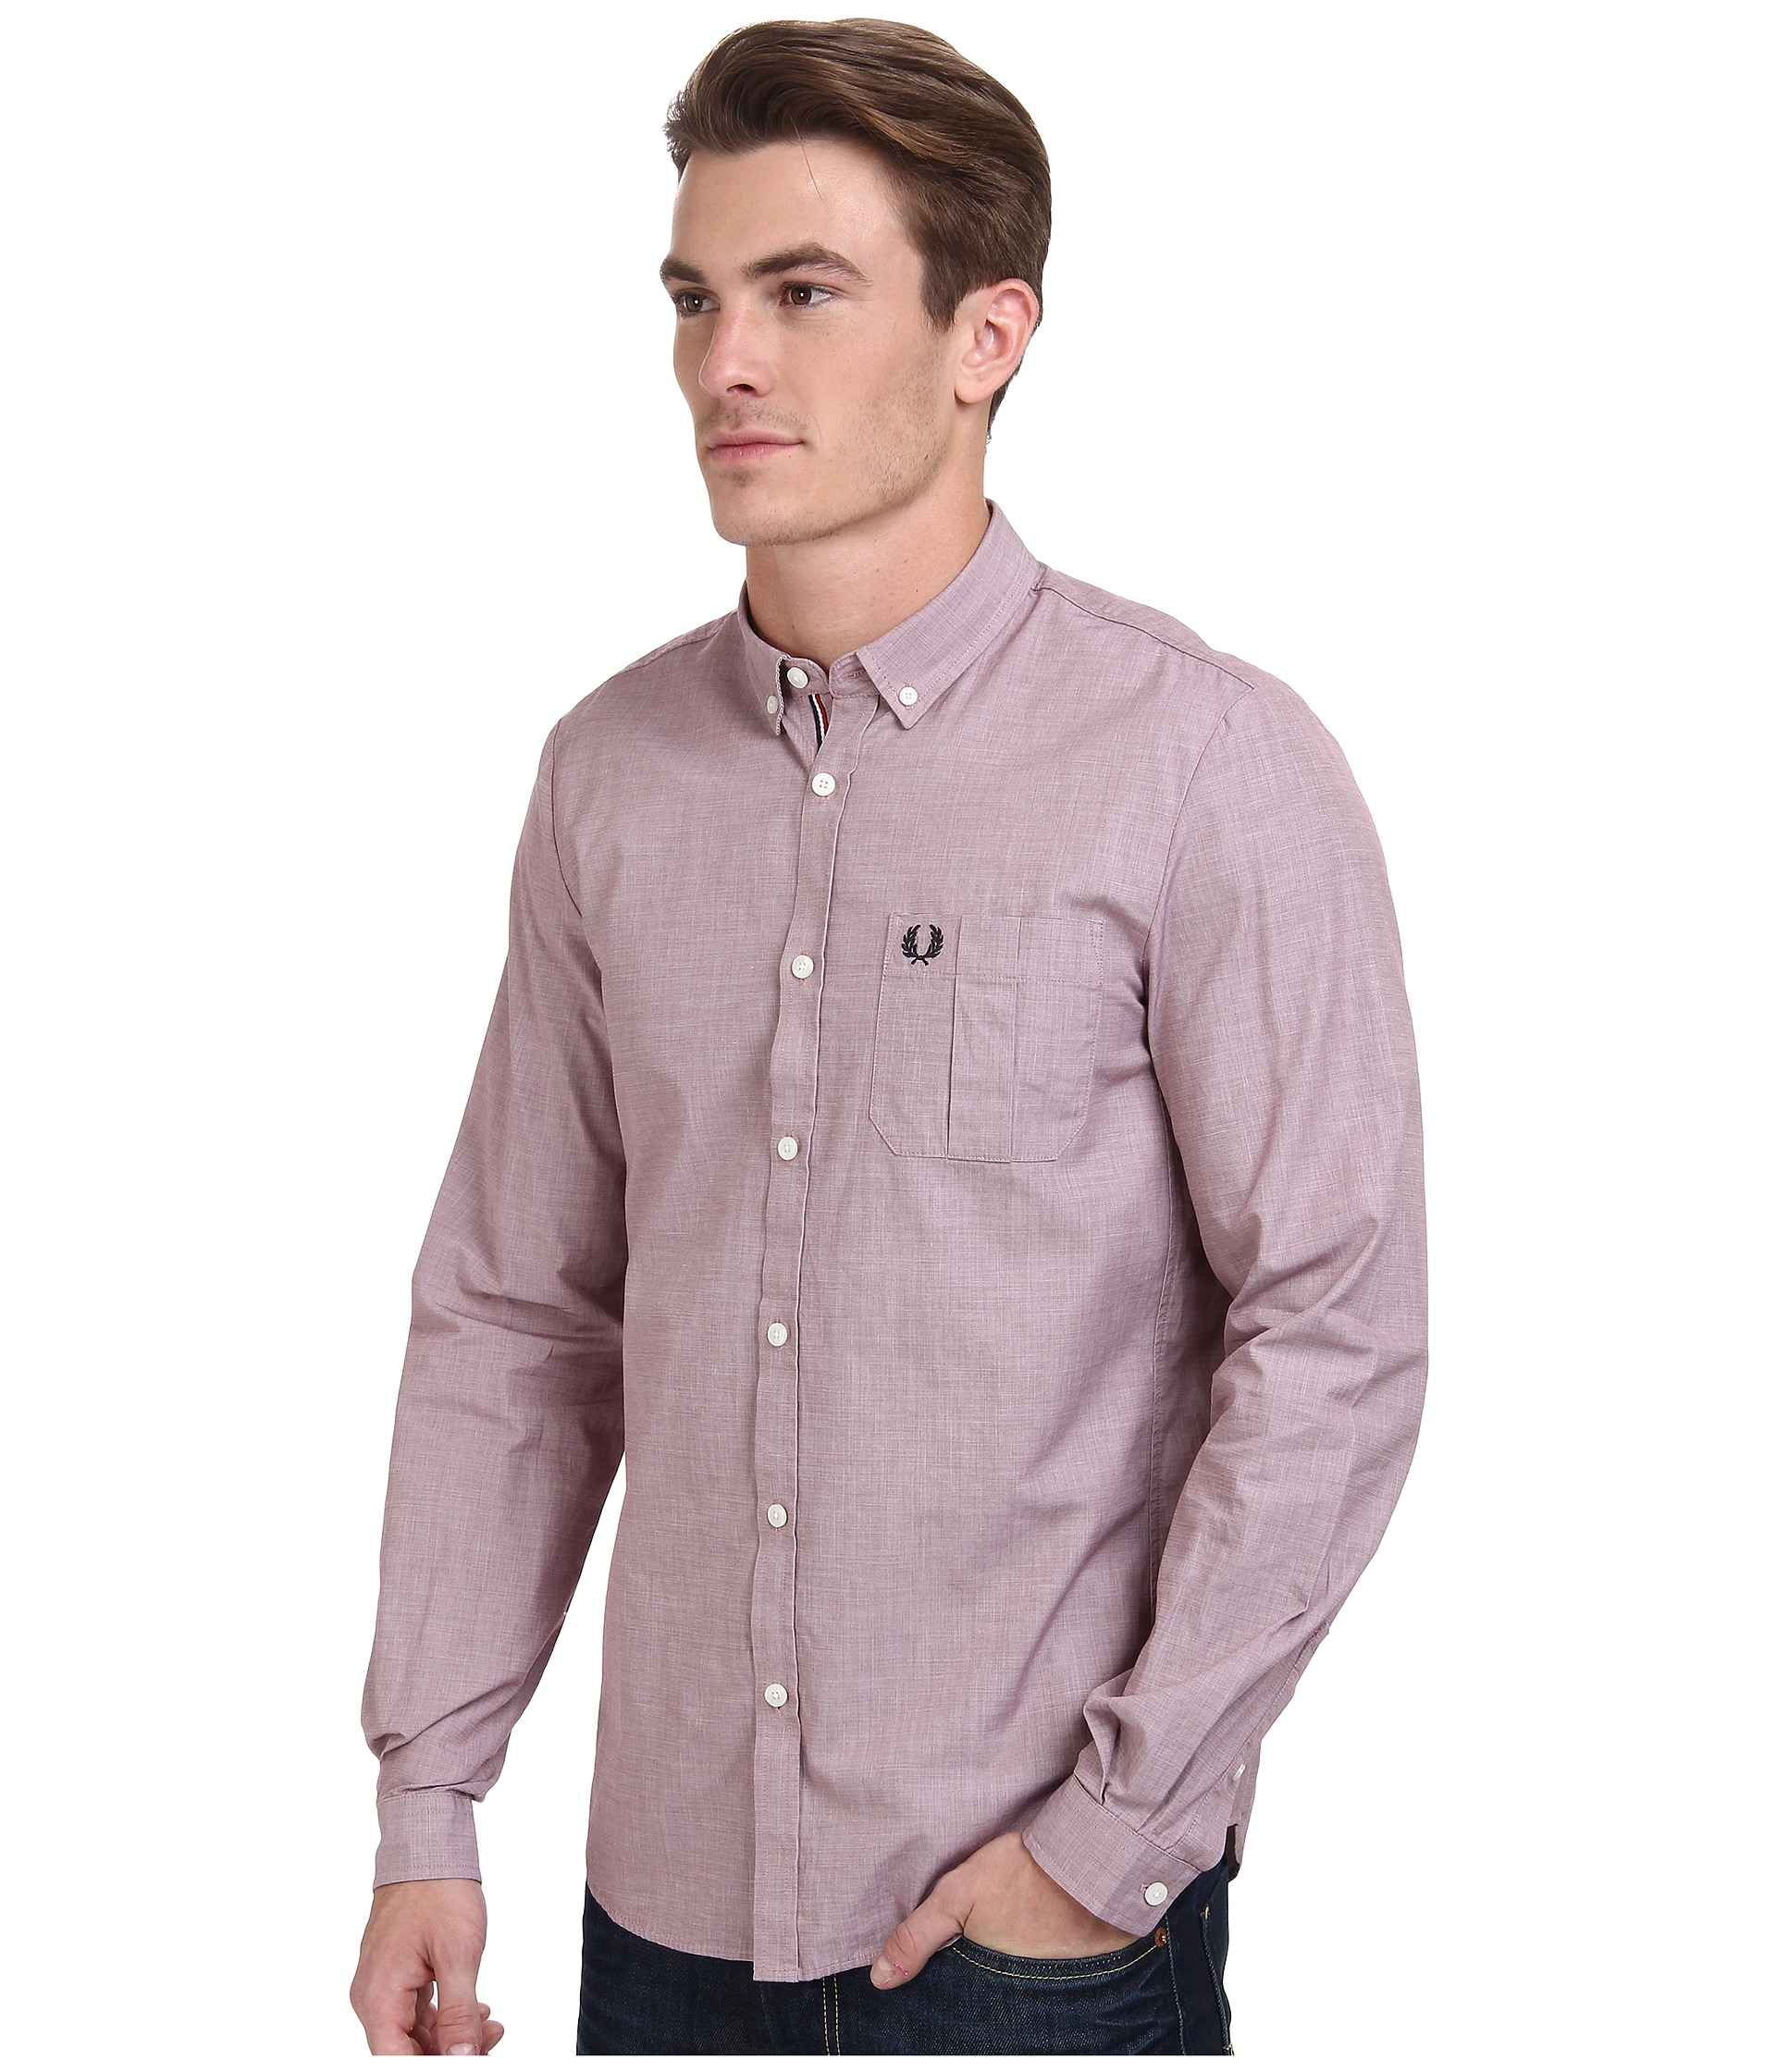 Lyst - Fred perry End On End Shirt in Red for Men